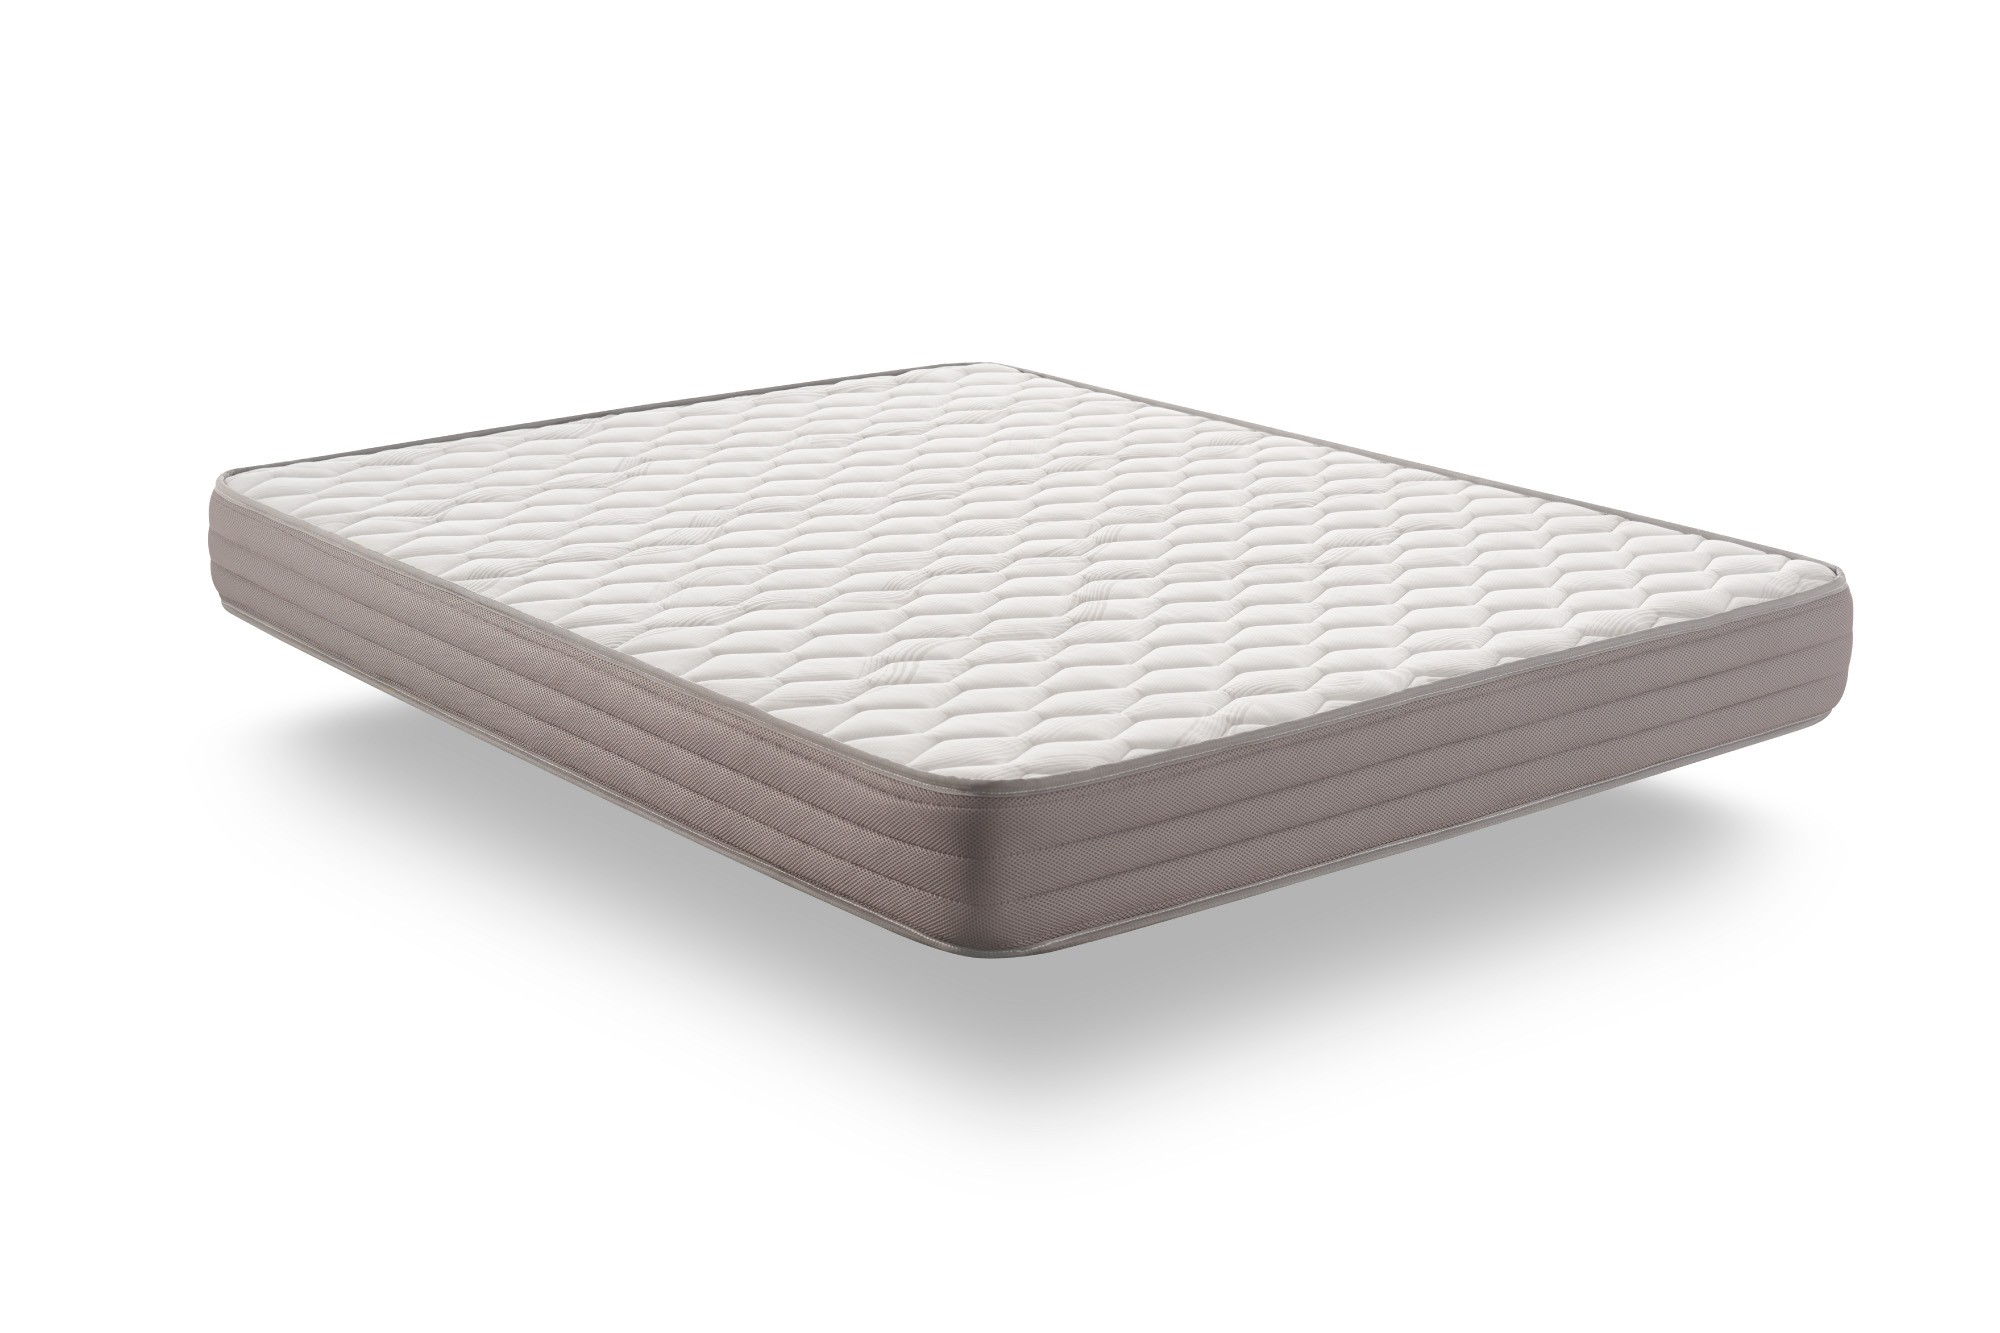 In the winter side, FibraFeel V300 fibers allow the mattress to regulate perspiration thanks to the feeling of freshness and its strong absorption of humidity.